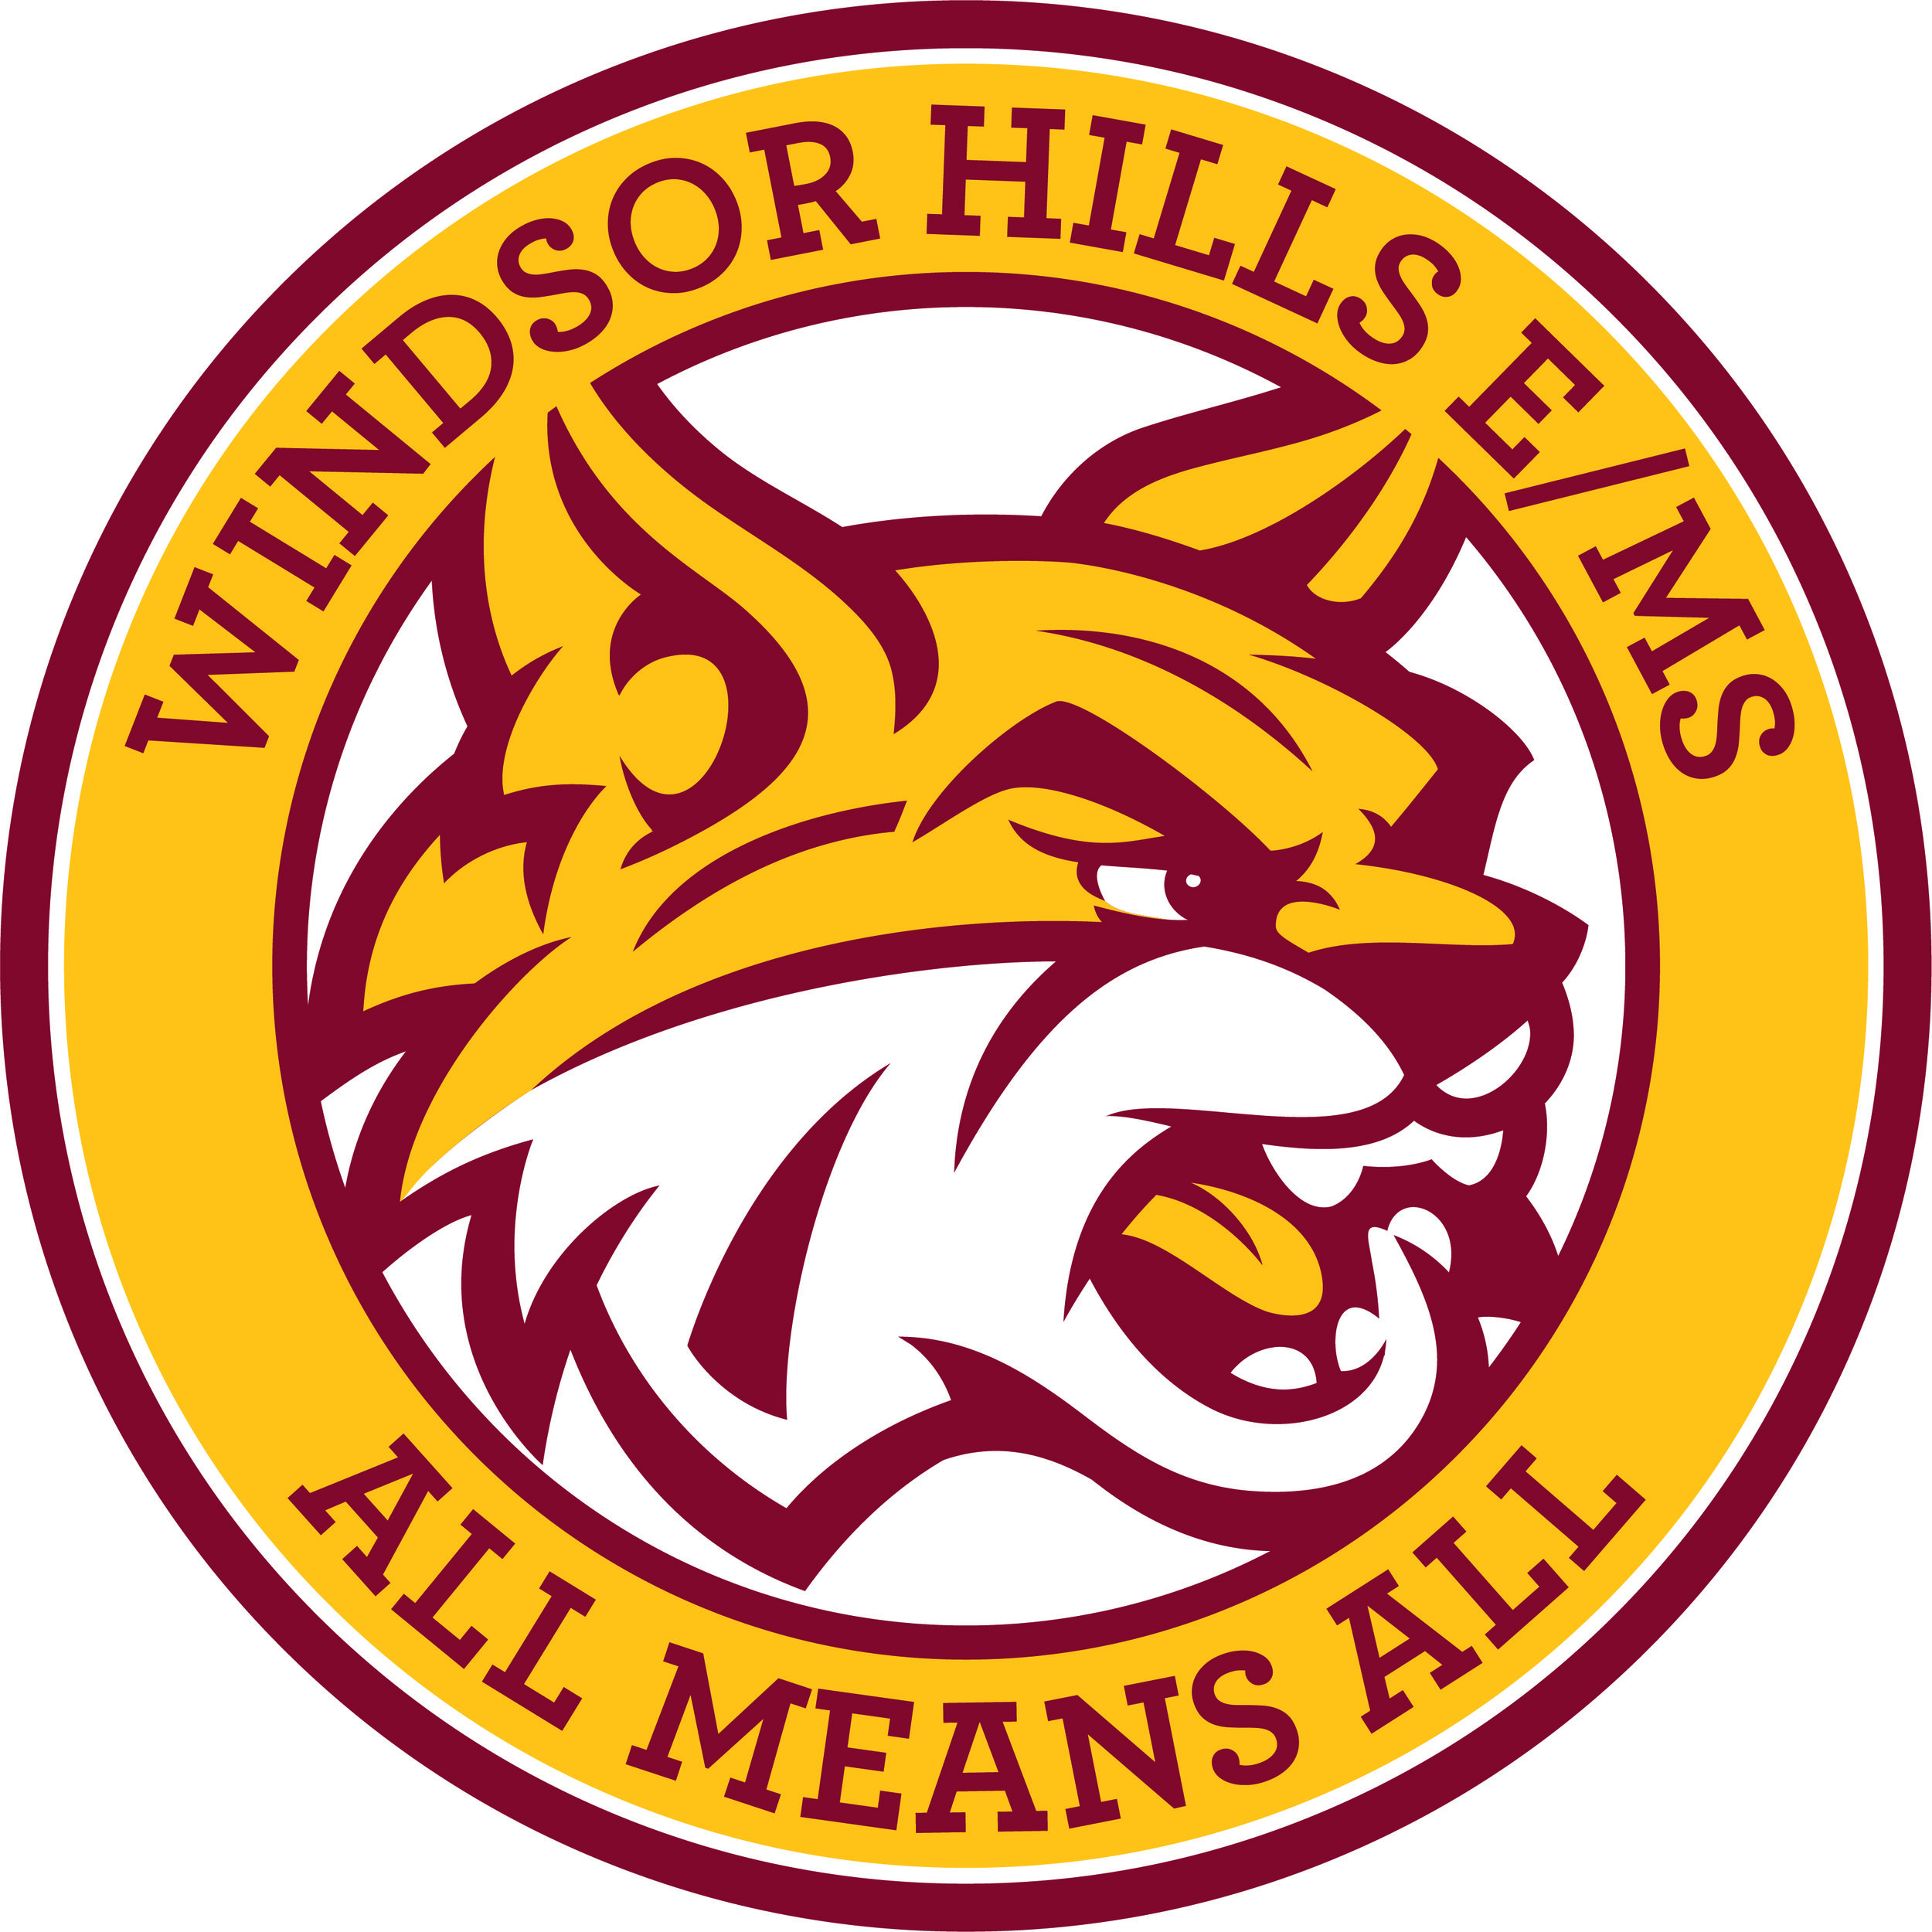 Windsor Hills Elementary/Middle School - We are a public, Pre-Kindergarten through 8th grade, school-wide Title I school located in West Baltimore.